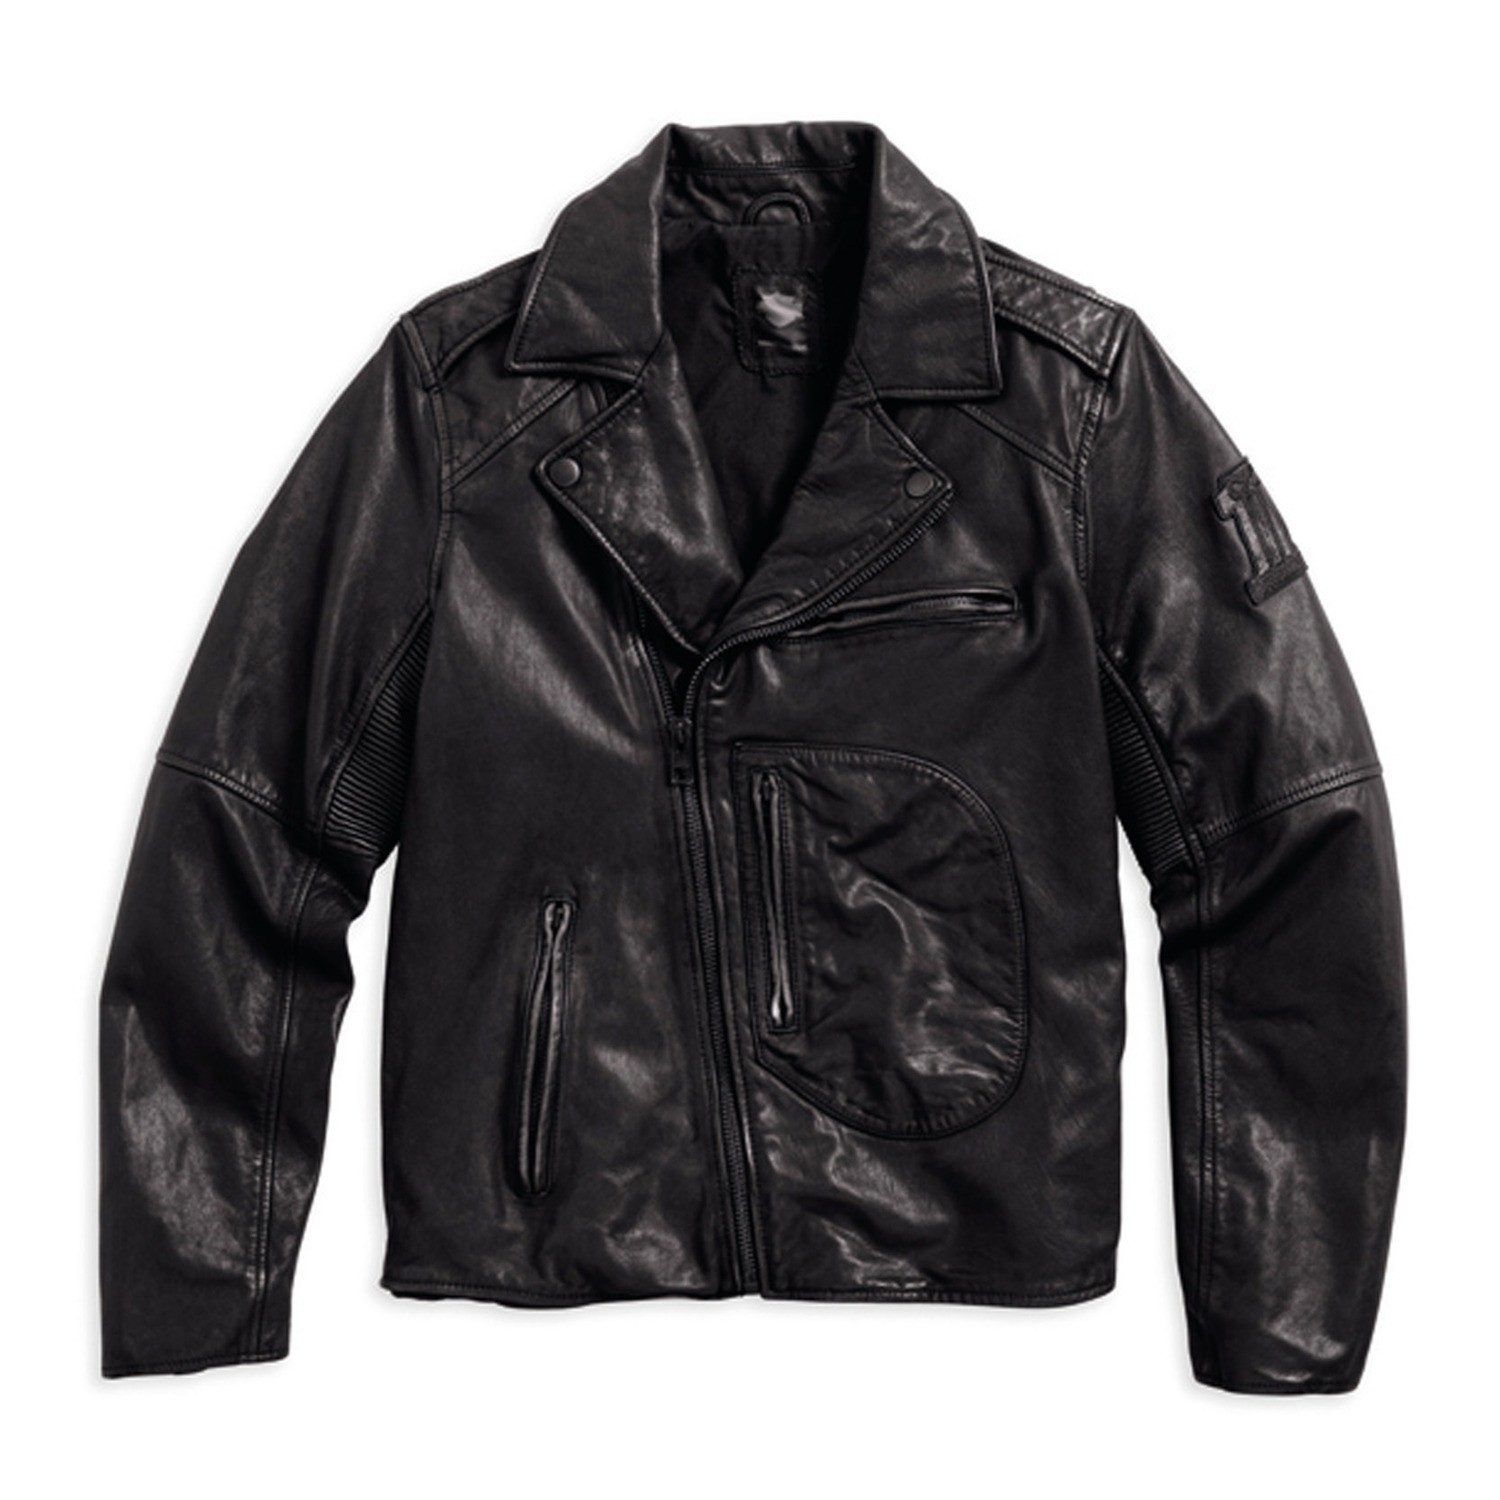 Vintage Fashion Leather Riding Jacket Men